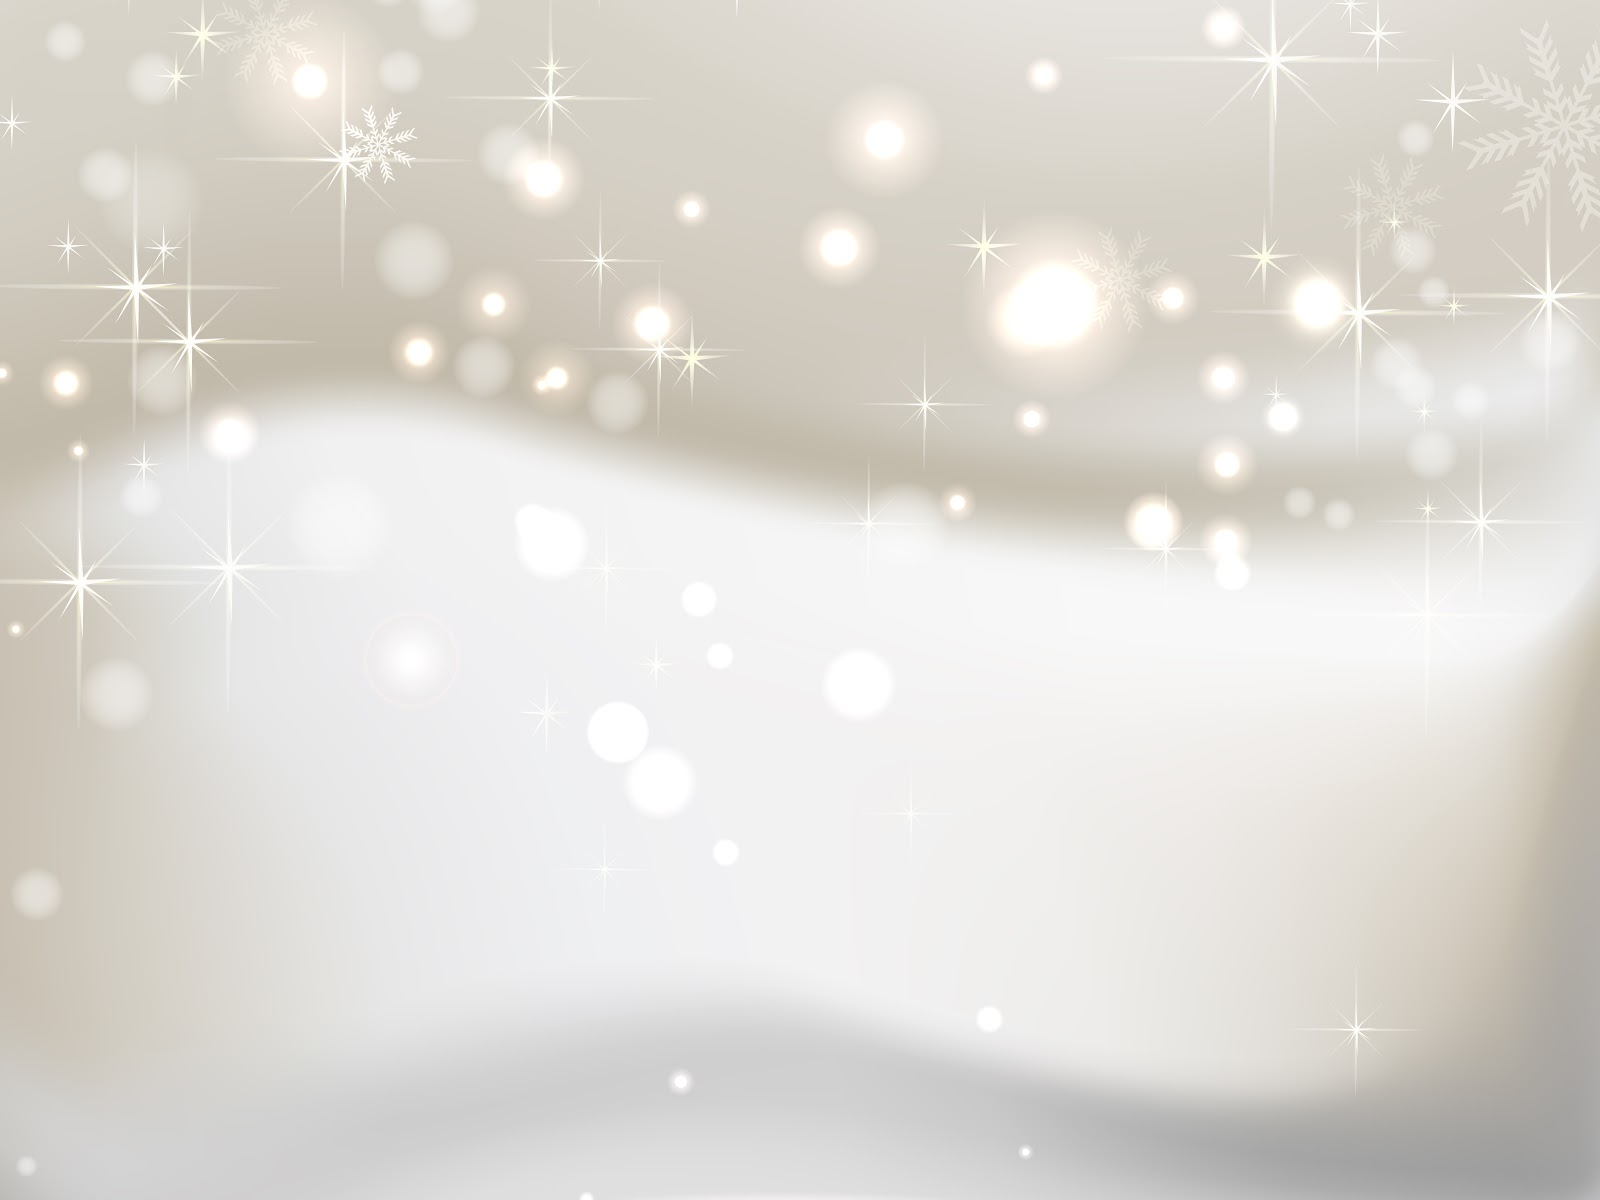 Snow Falling Video Wallpaper Fondos Navidad Vector